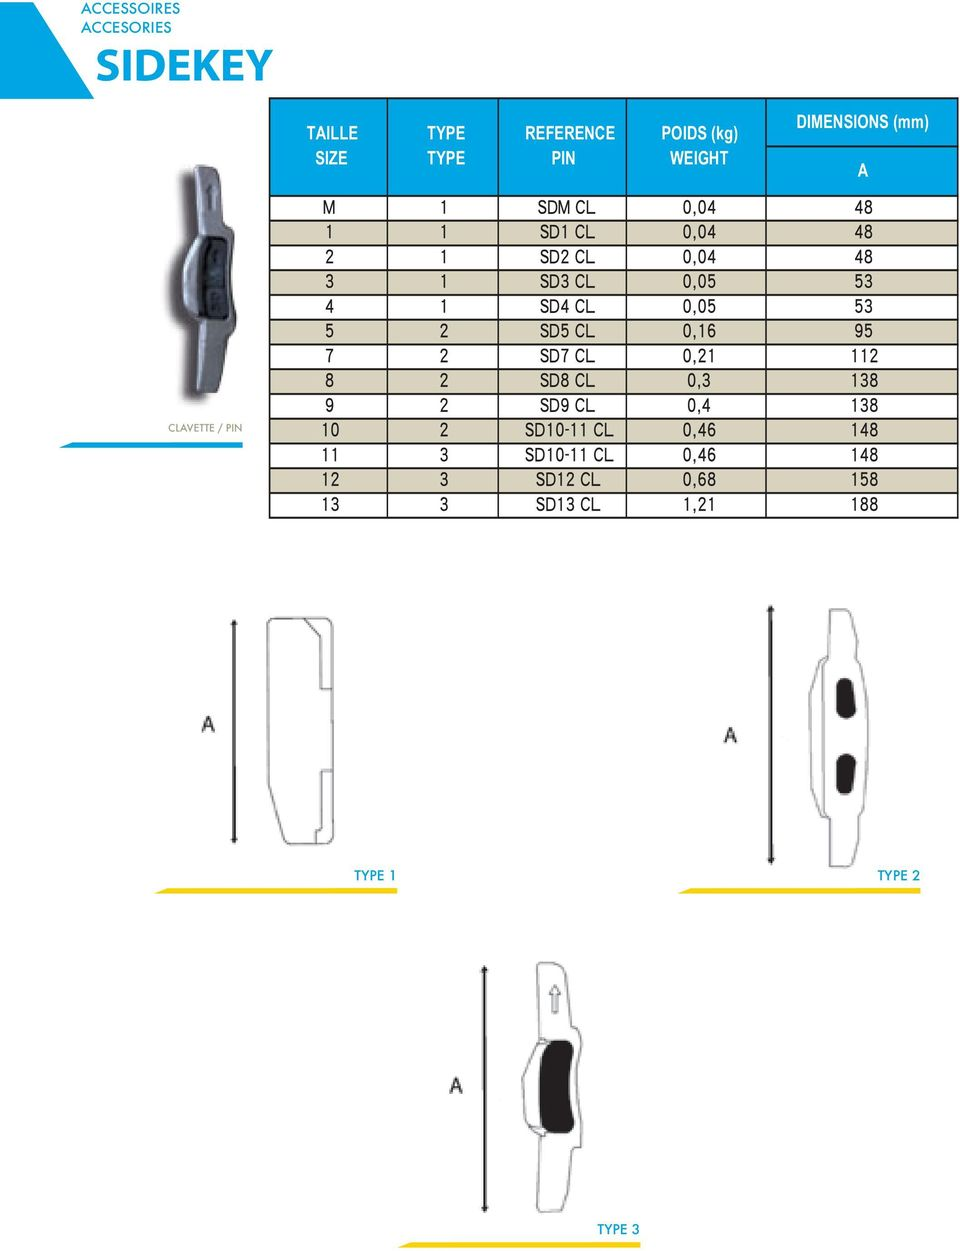 TYPE PIN WEIGHT DIMENSIONS (mm) A